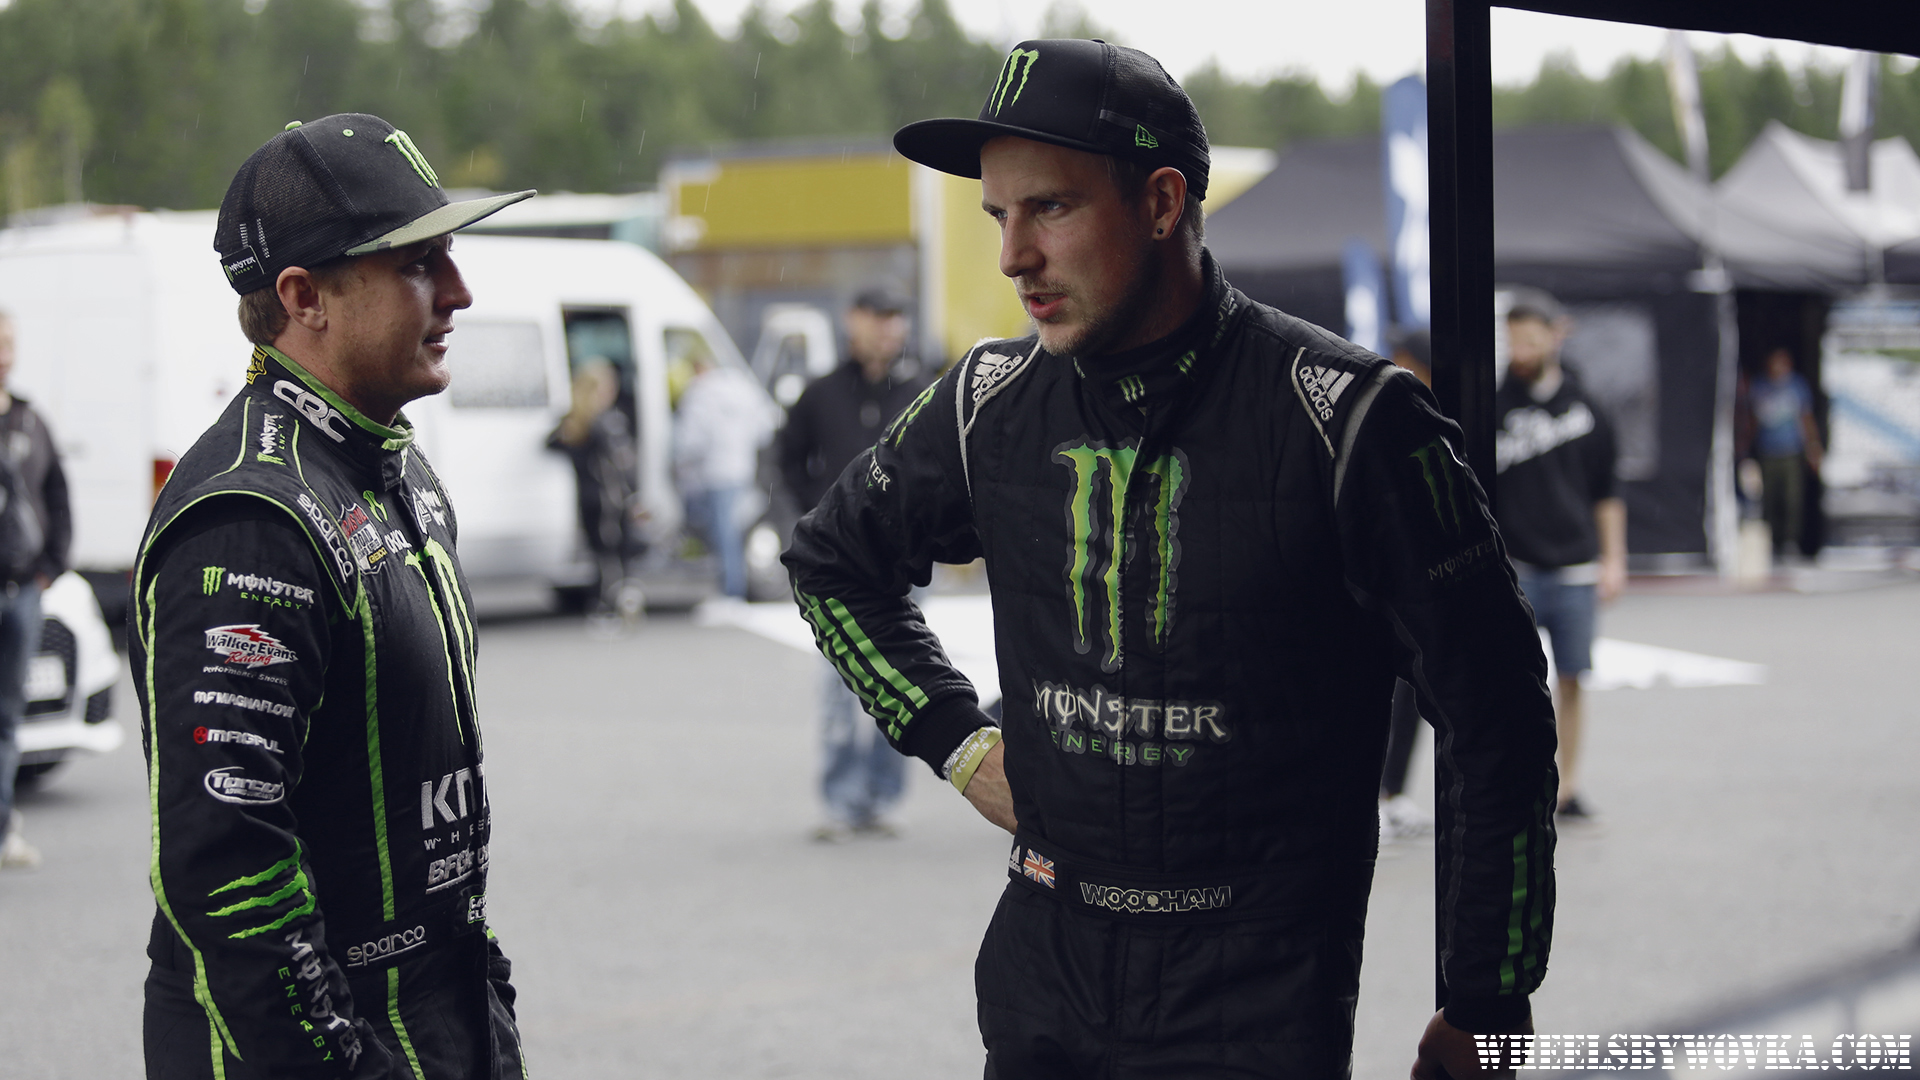 monster-energy-motorsport-drift-gatebil-rudskogen-by-wheelsbywovka-14